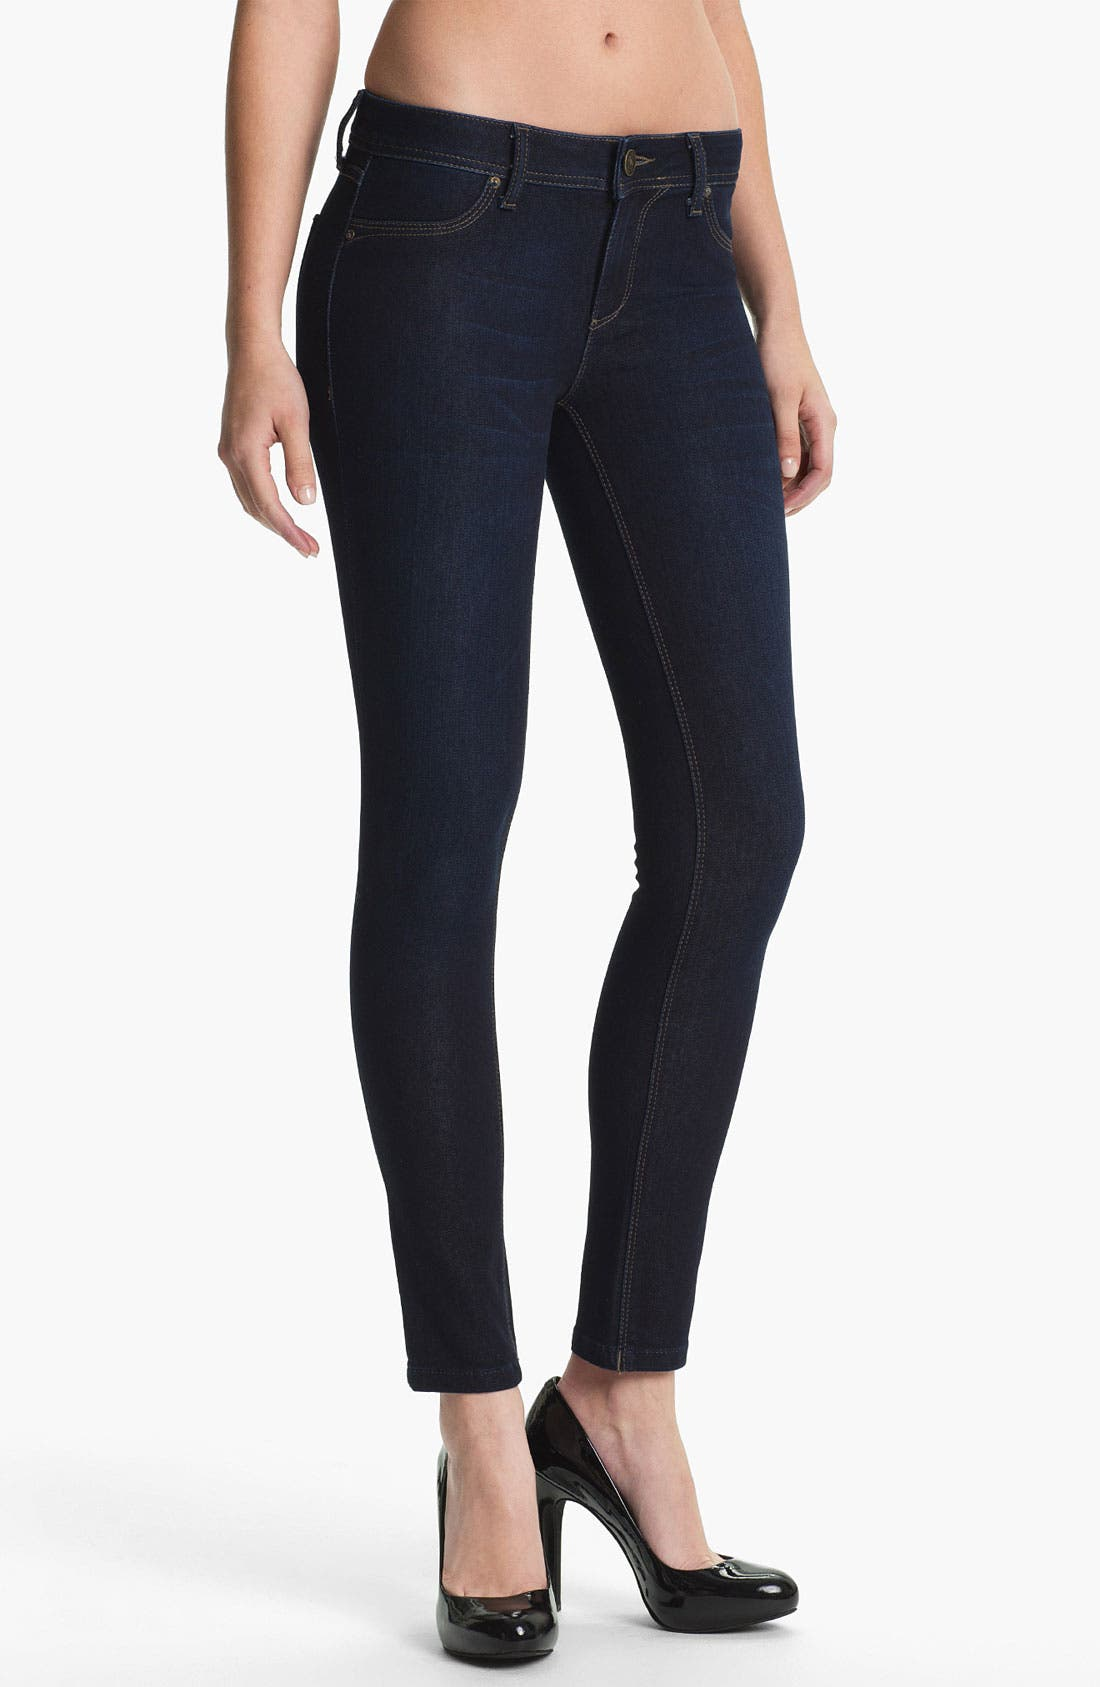 Alternate Image 1 Selected - DL1961 'Emma' X-Fit Stretch Denim Skinny Jeans (Skye)